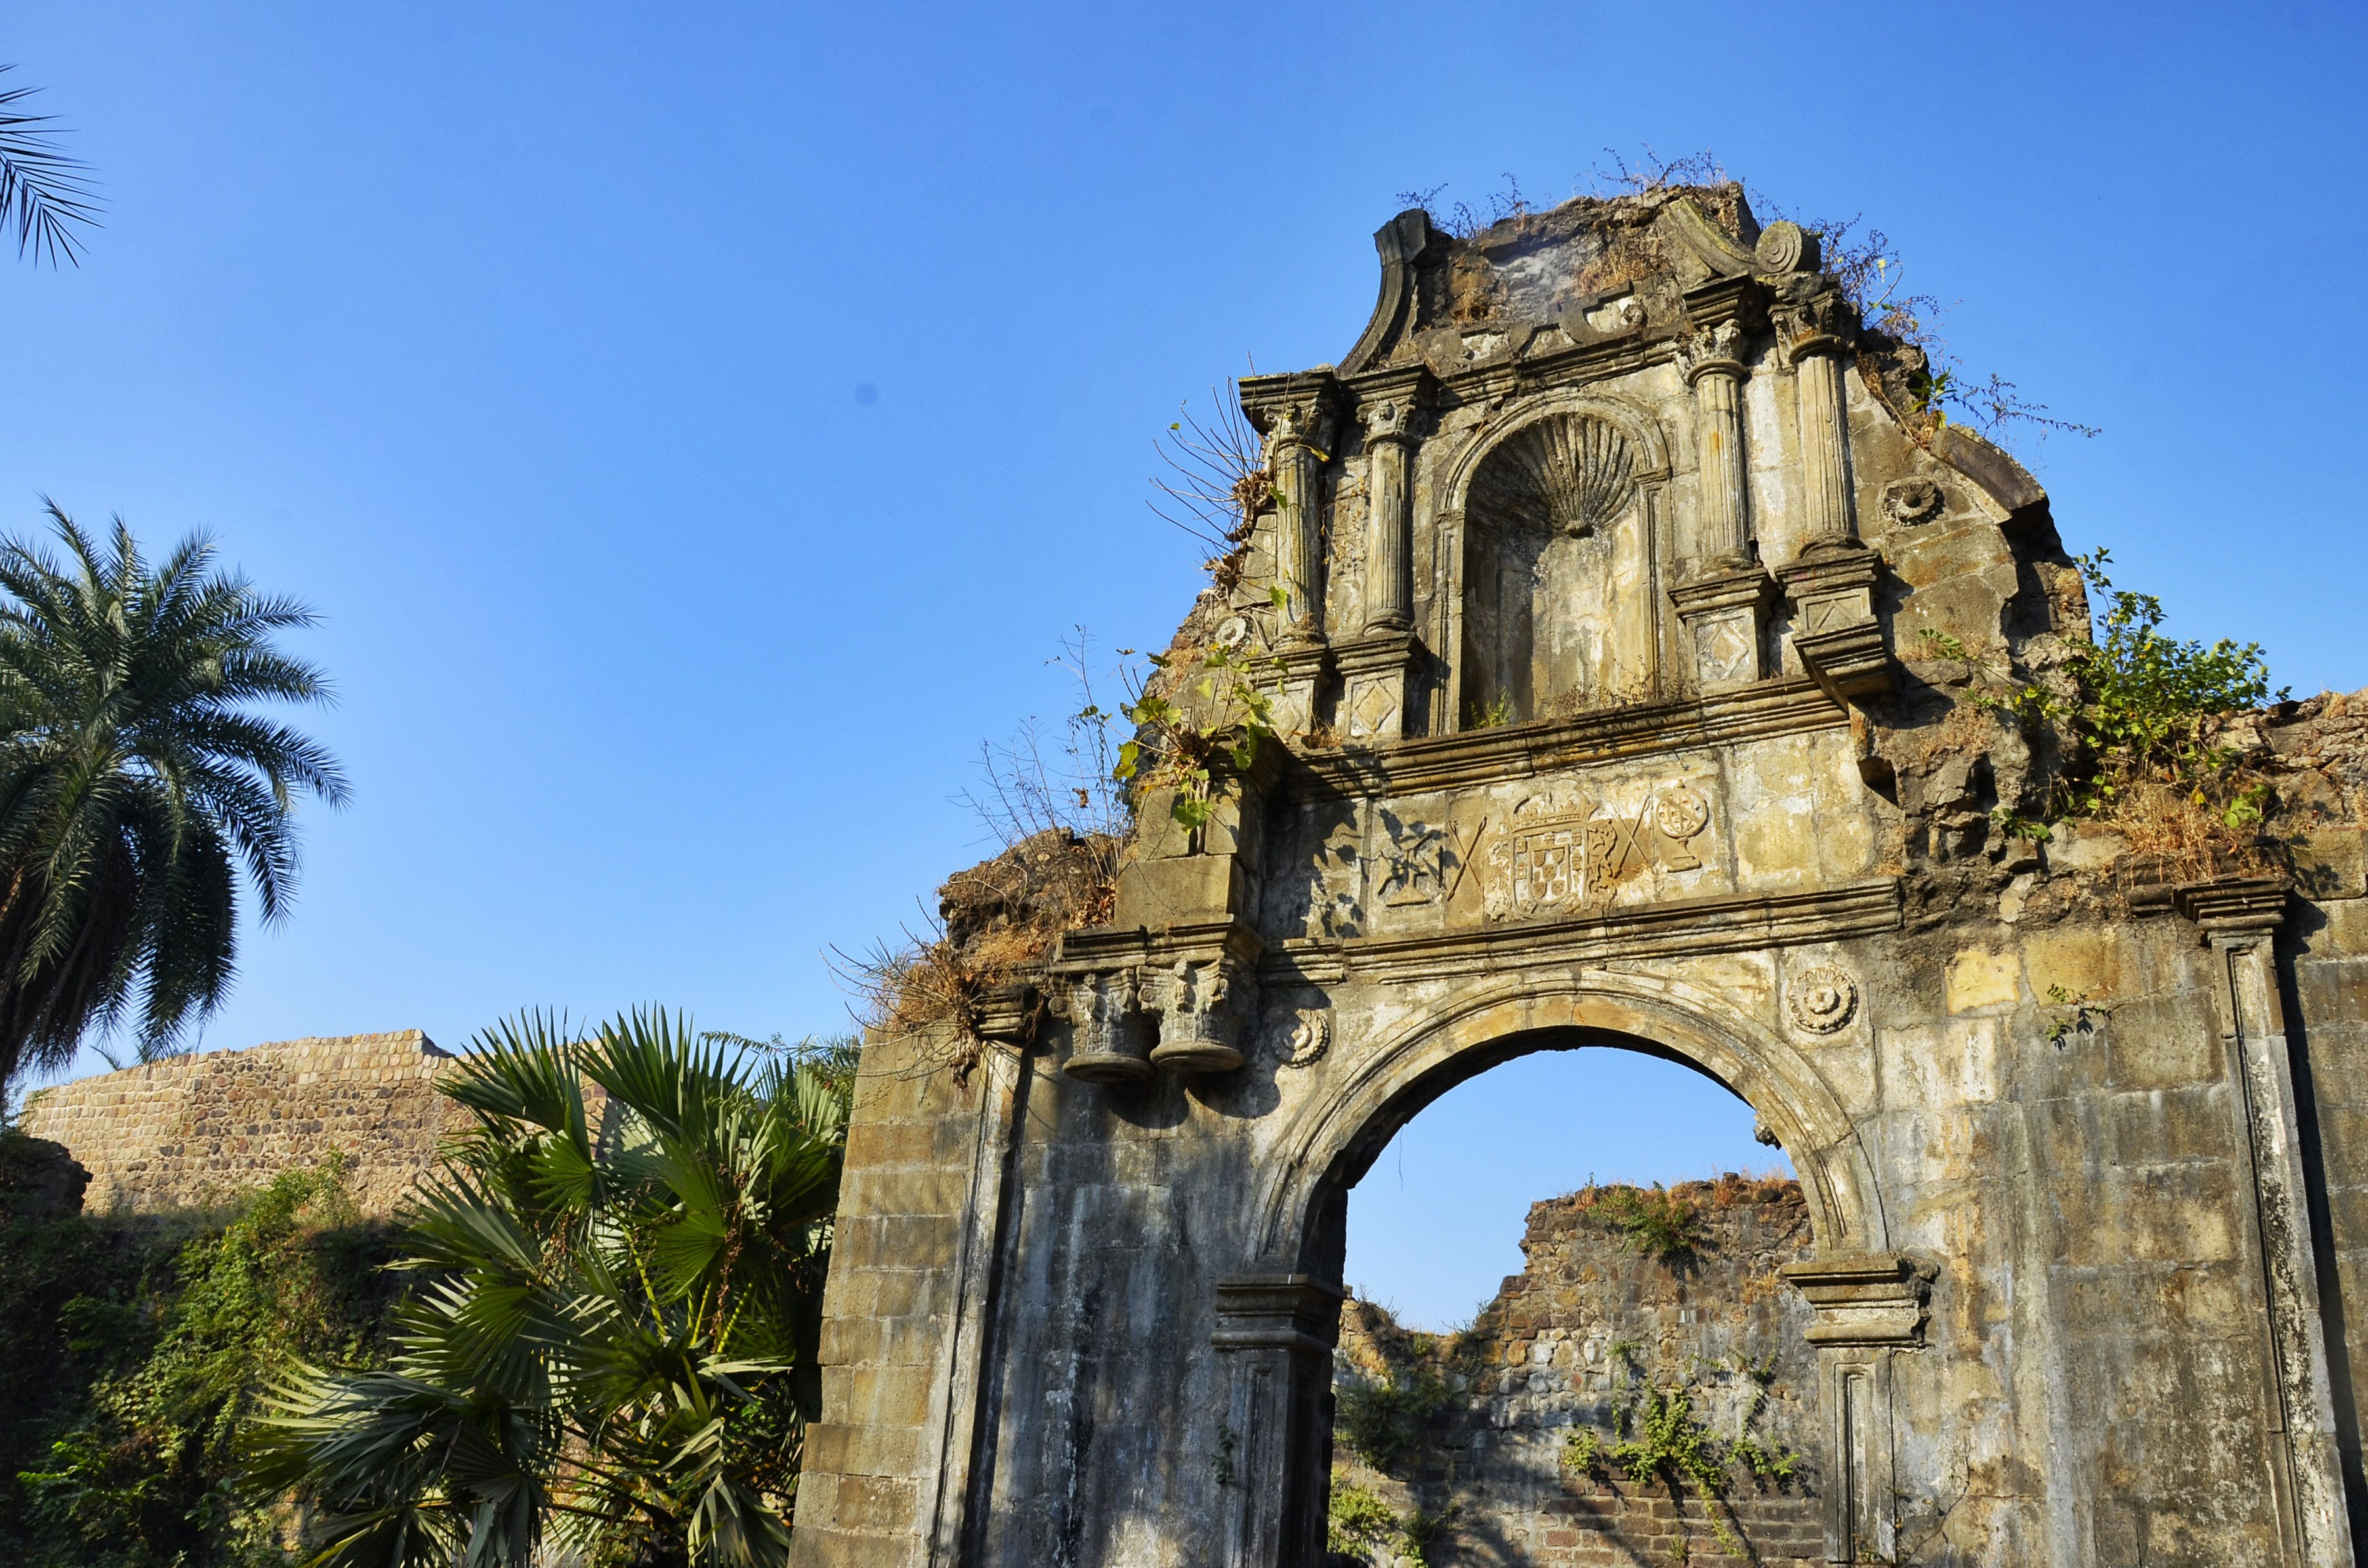 Entrance to the citadel in Vasai Fort.